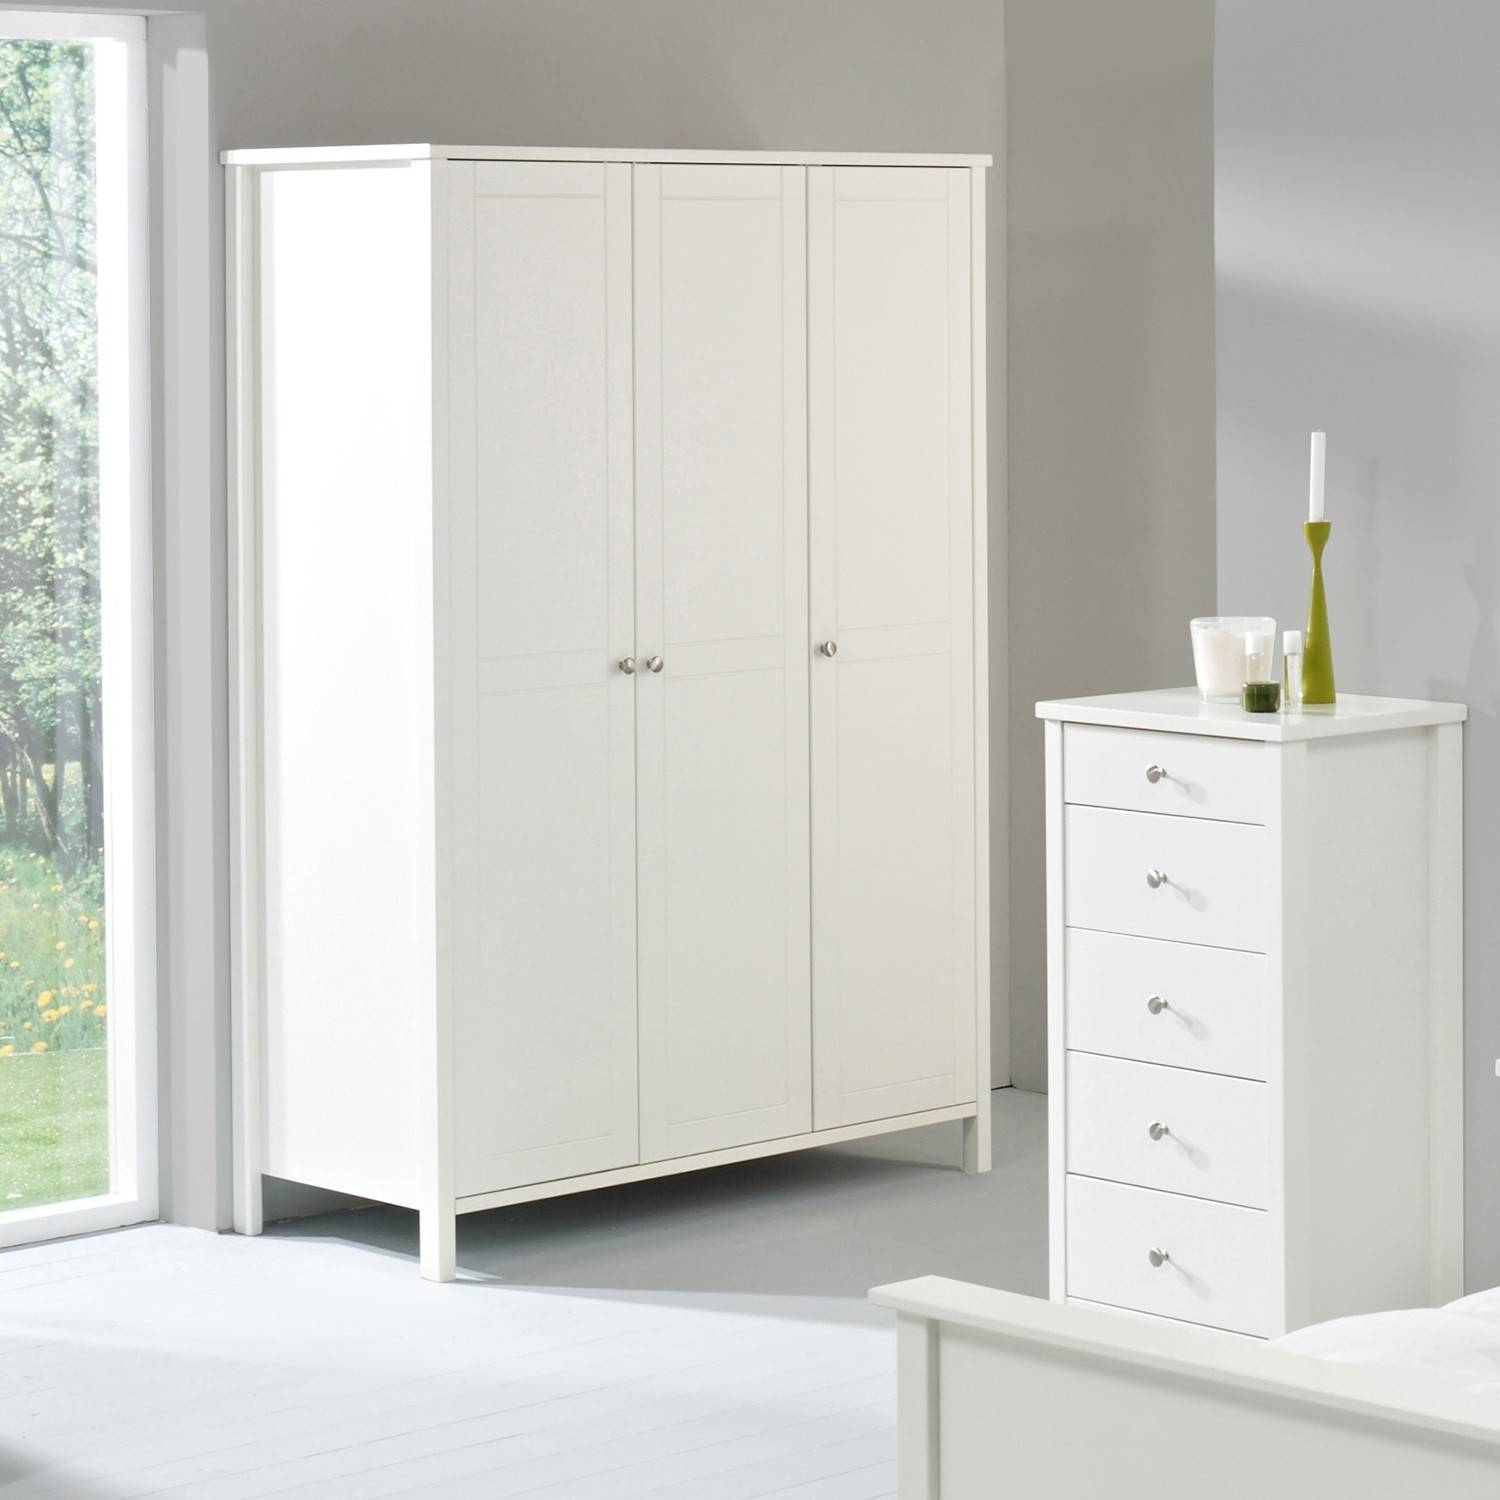 Stockholm White 3 Door Wardrobe | Bedroom Furniture Direct Regarding 3 Door White Wardrobes With Drawers (View 14 of 15)